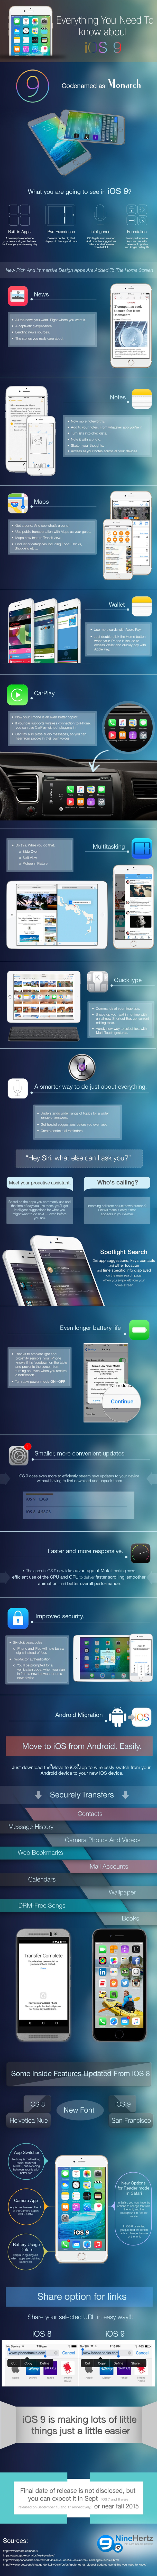 Meet The All New Apple iOS 9 [Infographic] - Image 1